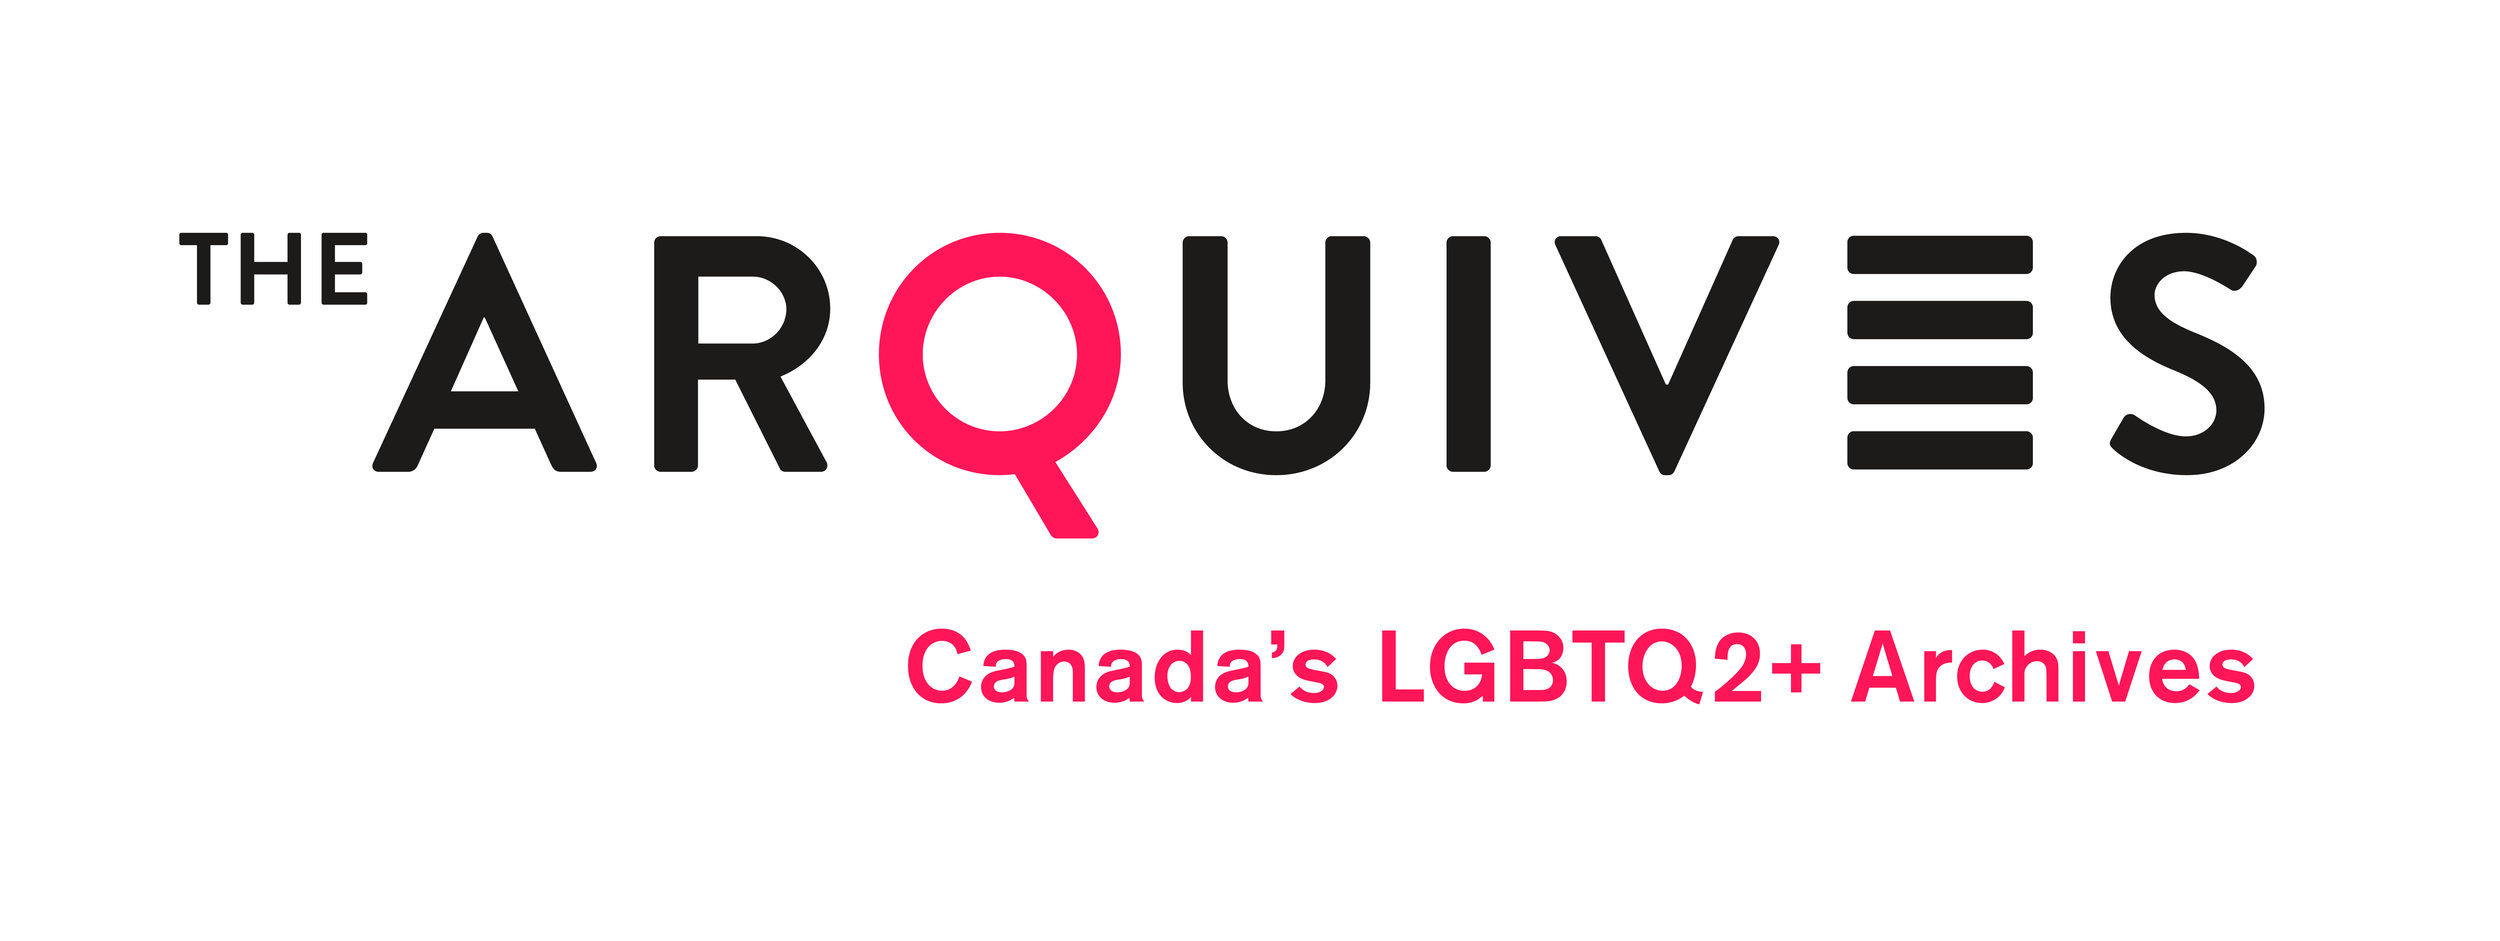 The ArQuives: Canada's LGBTQ2+ Archives (formerly the Canadian Lesbian and Gay Archives)